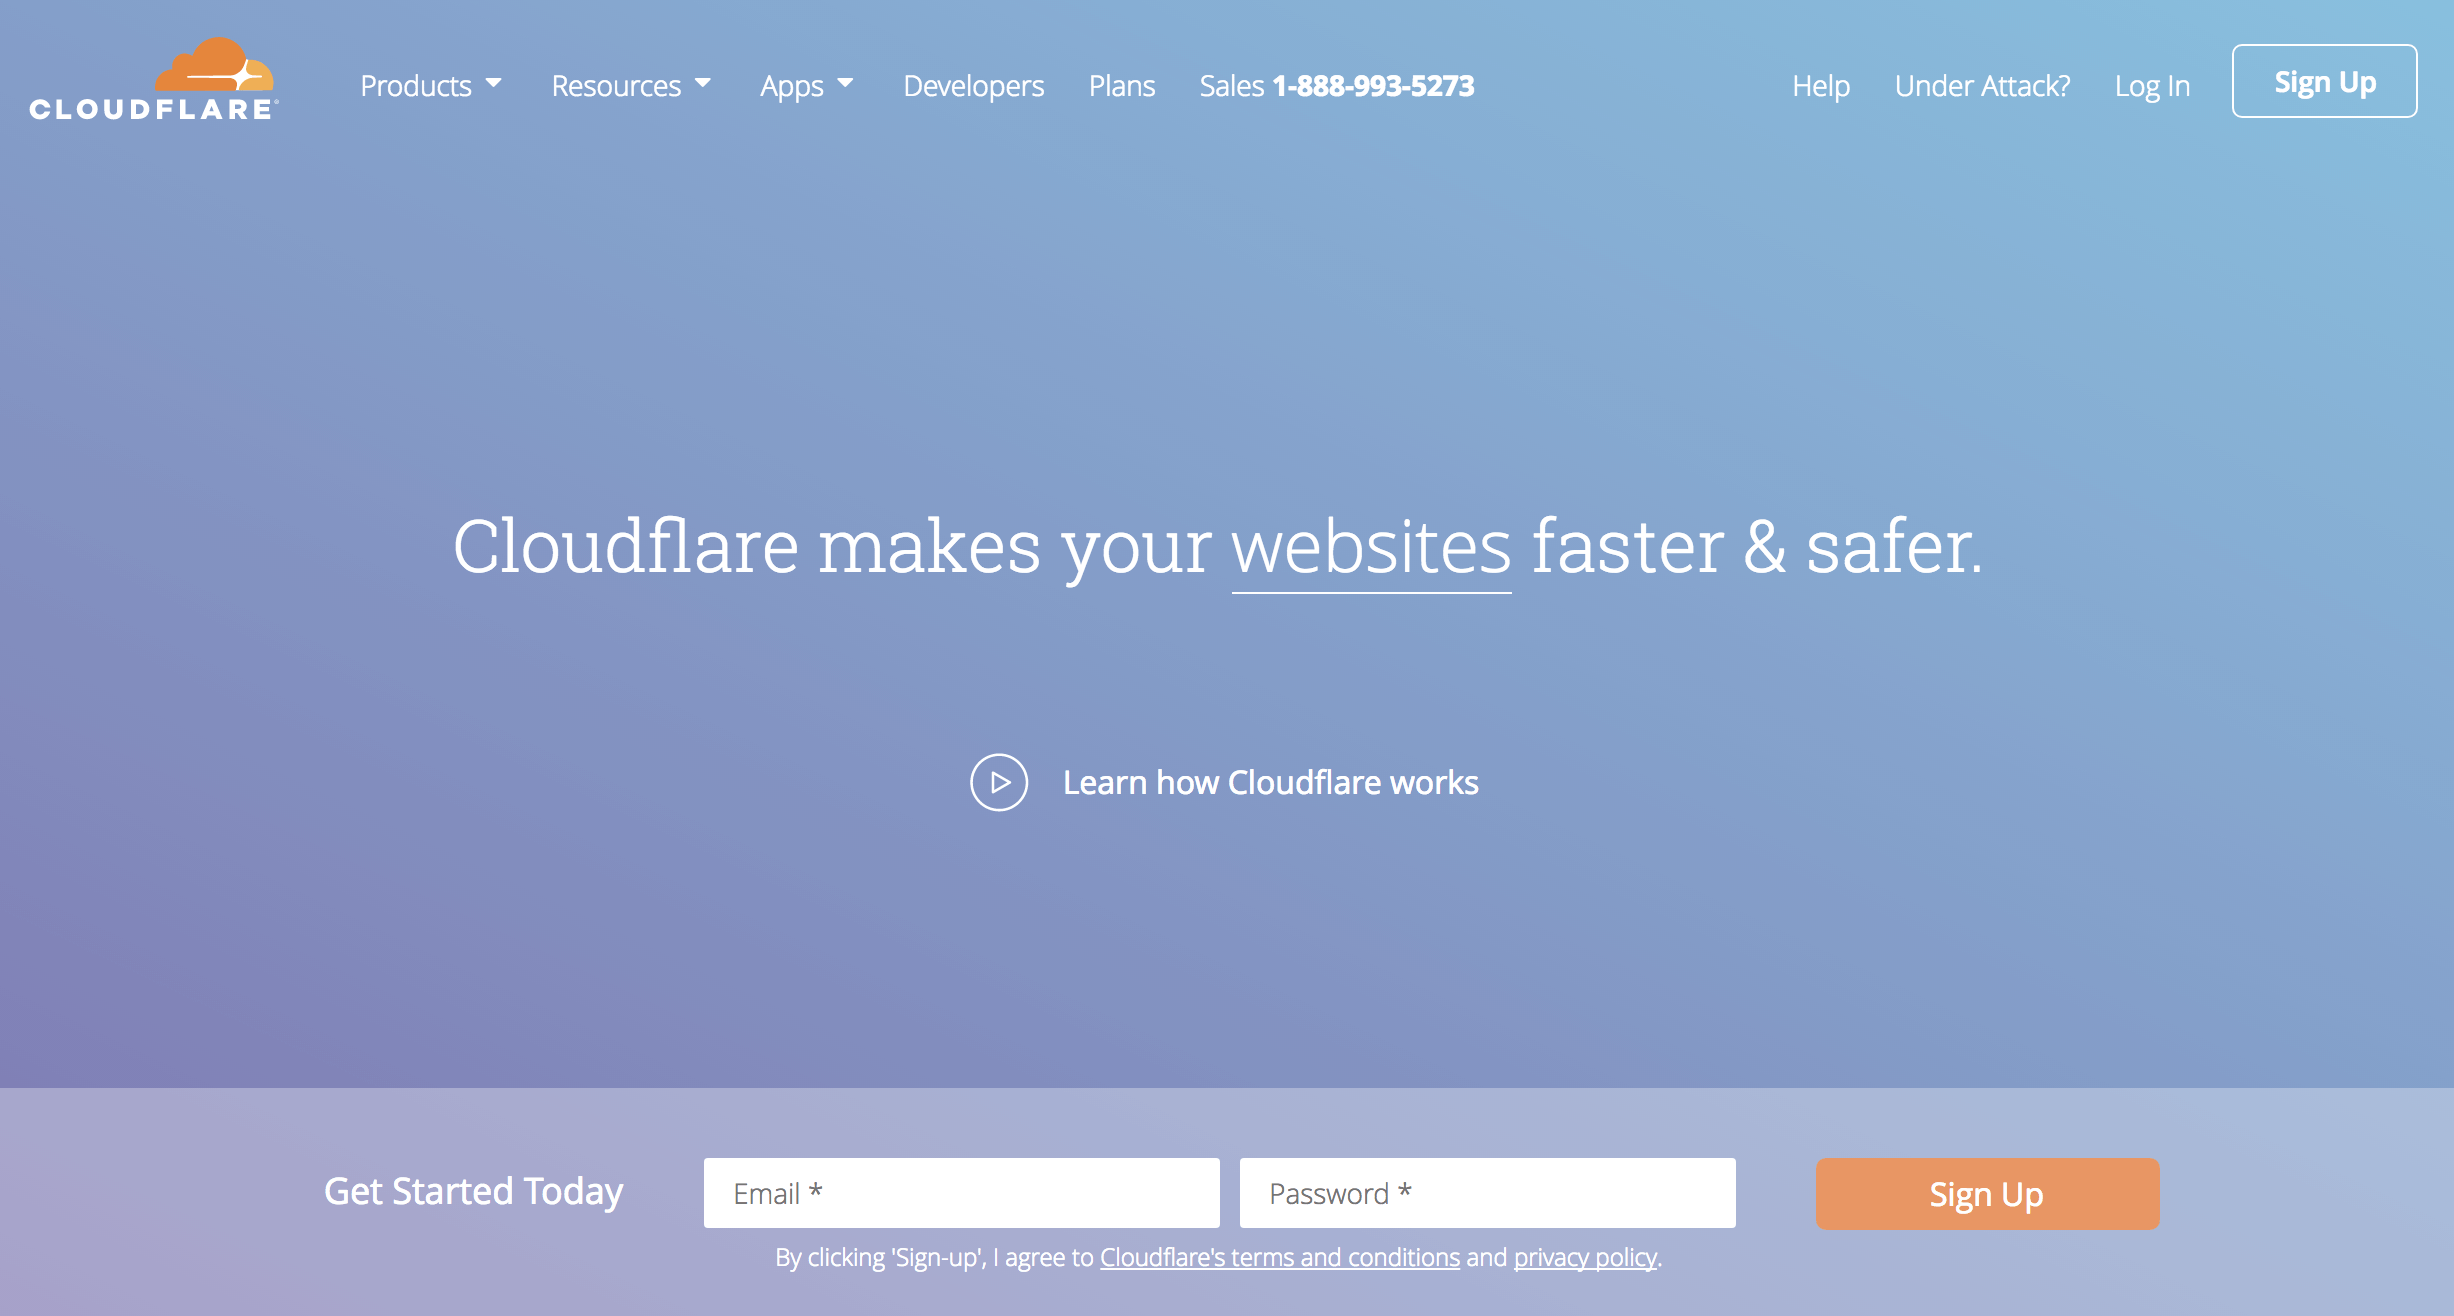 The cloudflare.com home page.